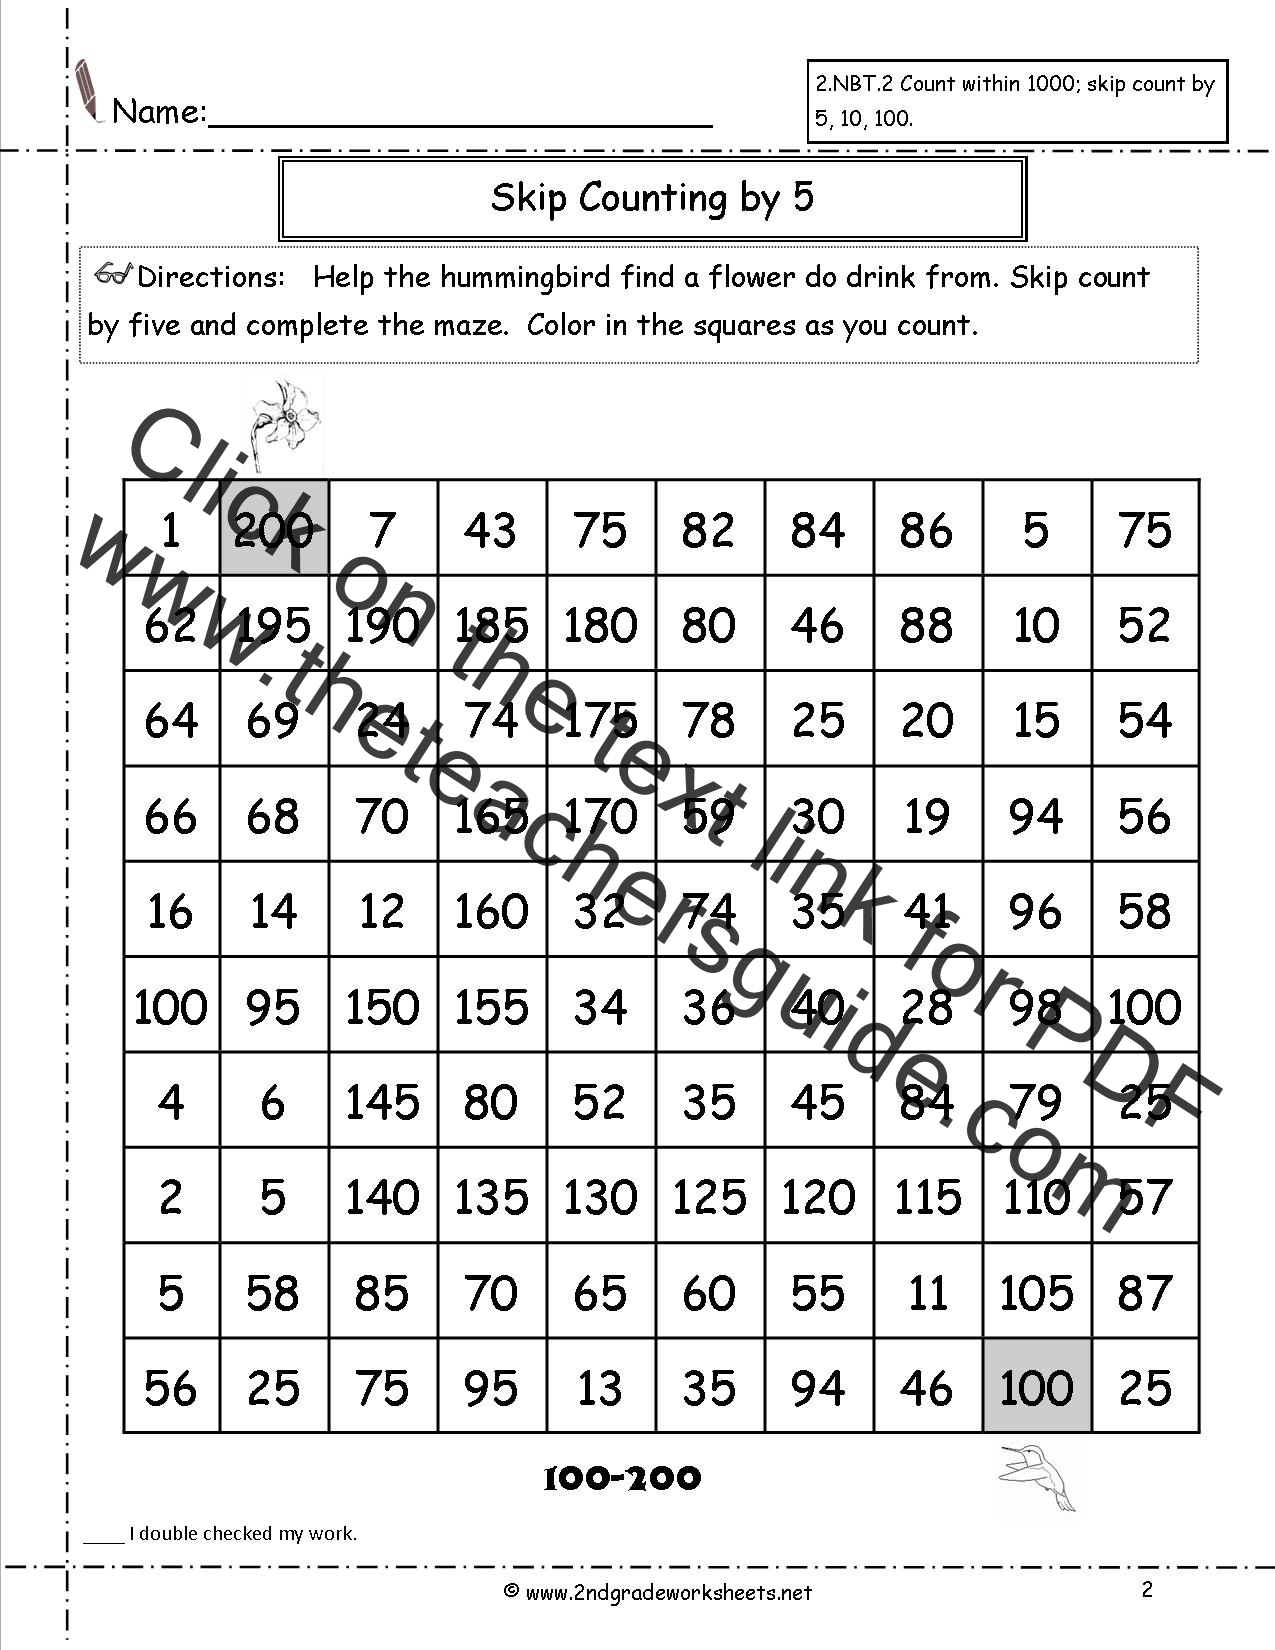 Worksheet Complete The Skip Counting Series Grass Fedjp